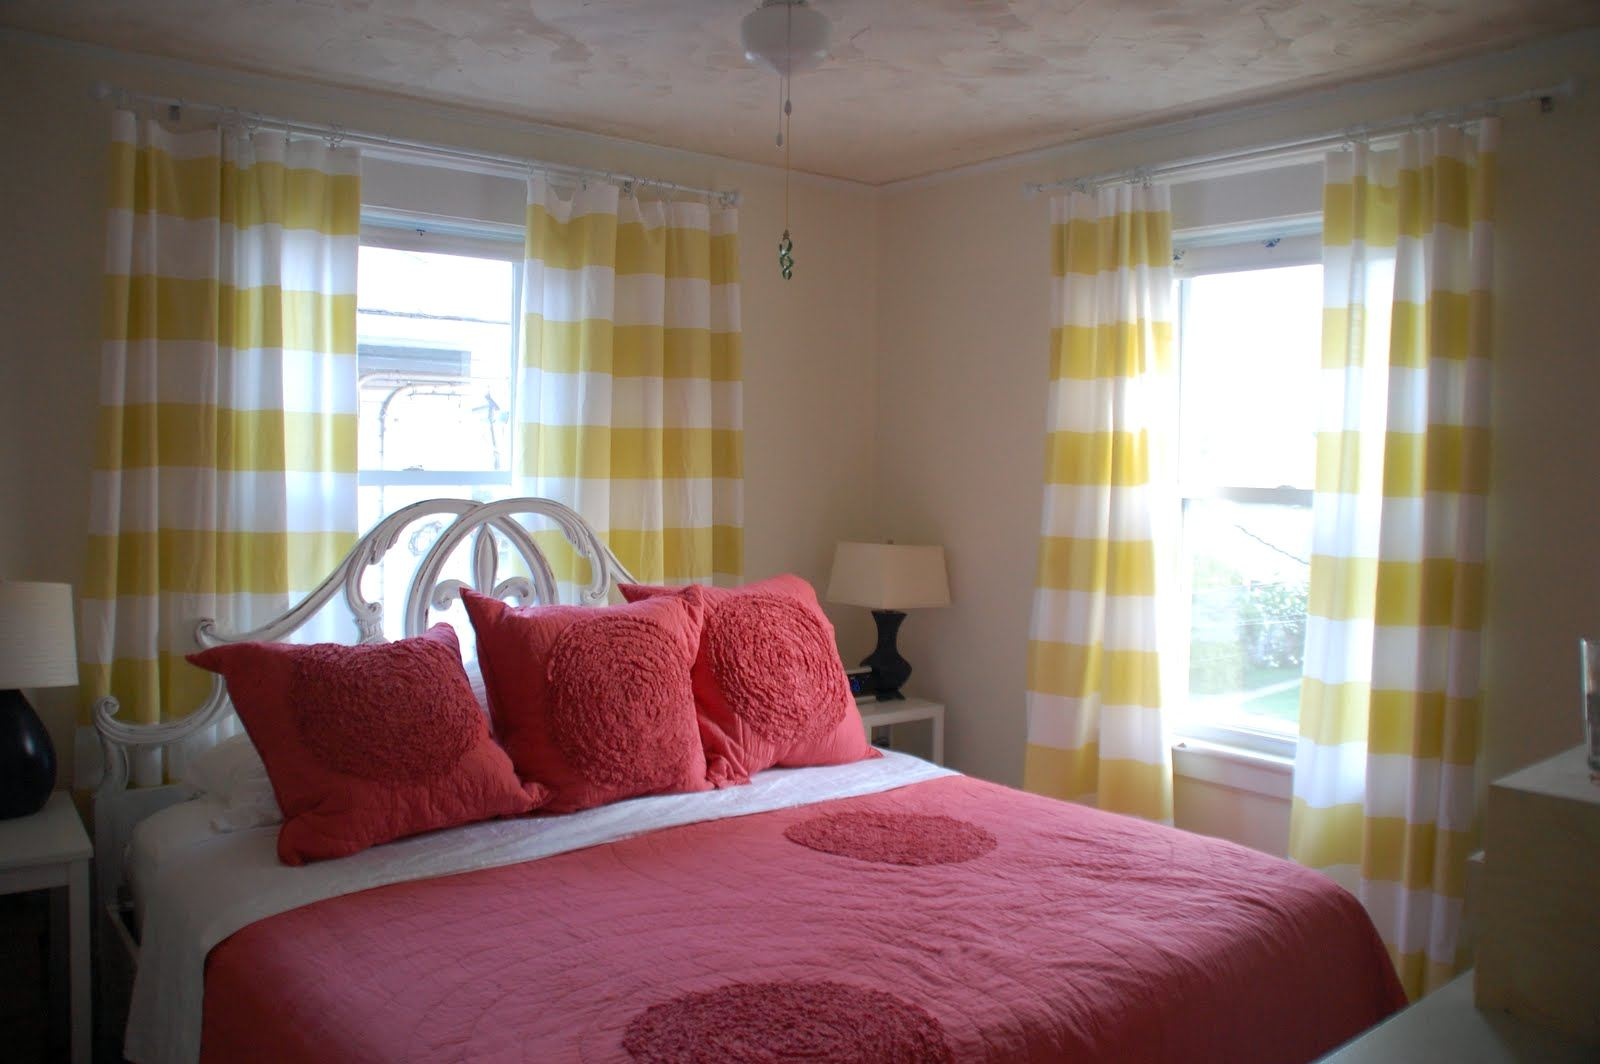 awesome Yellow Horizontal Striped Curtains with pink bed cover and pillow feat